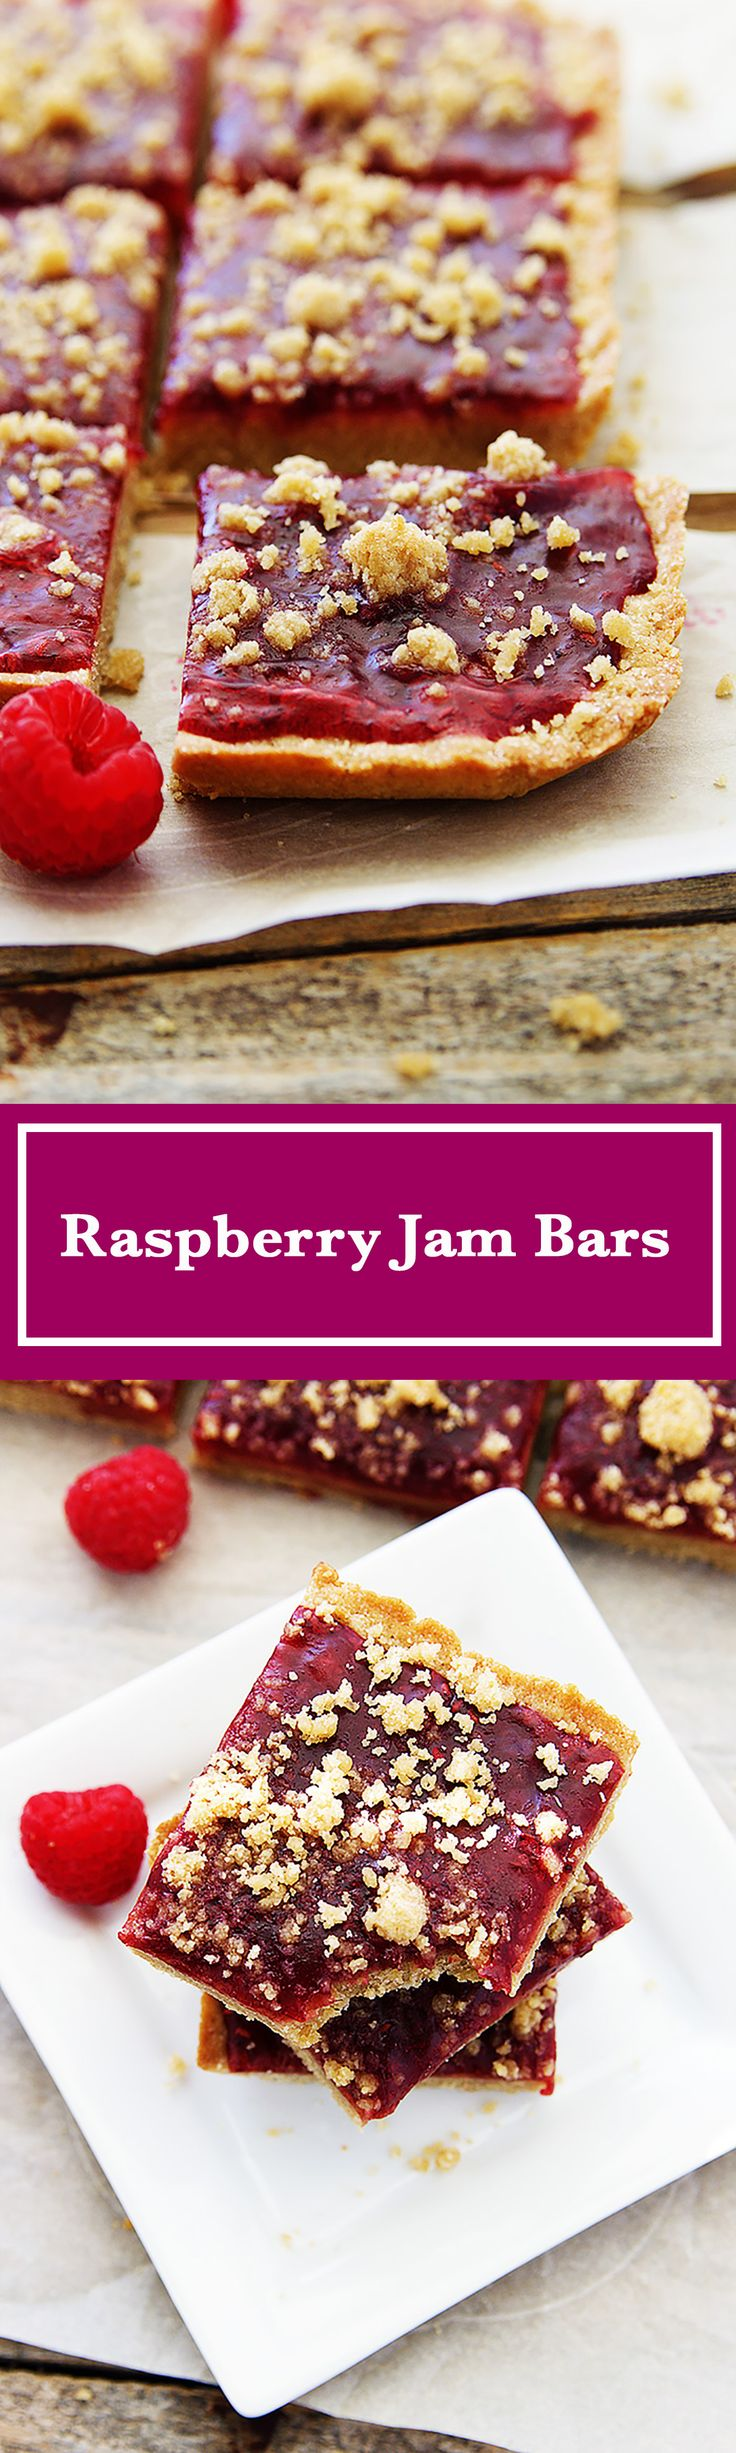 Hot and gooey right out of the oven, Raspberry Jam Bars are delicious.